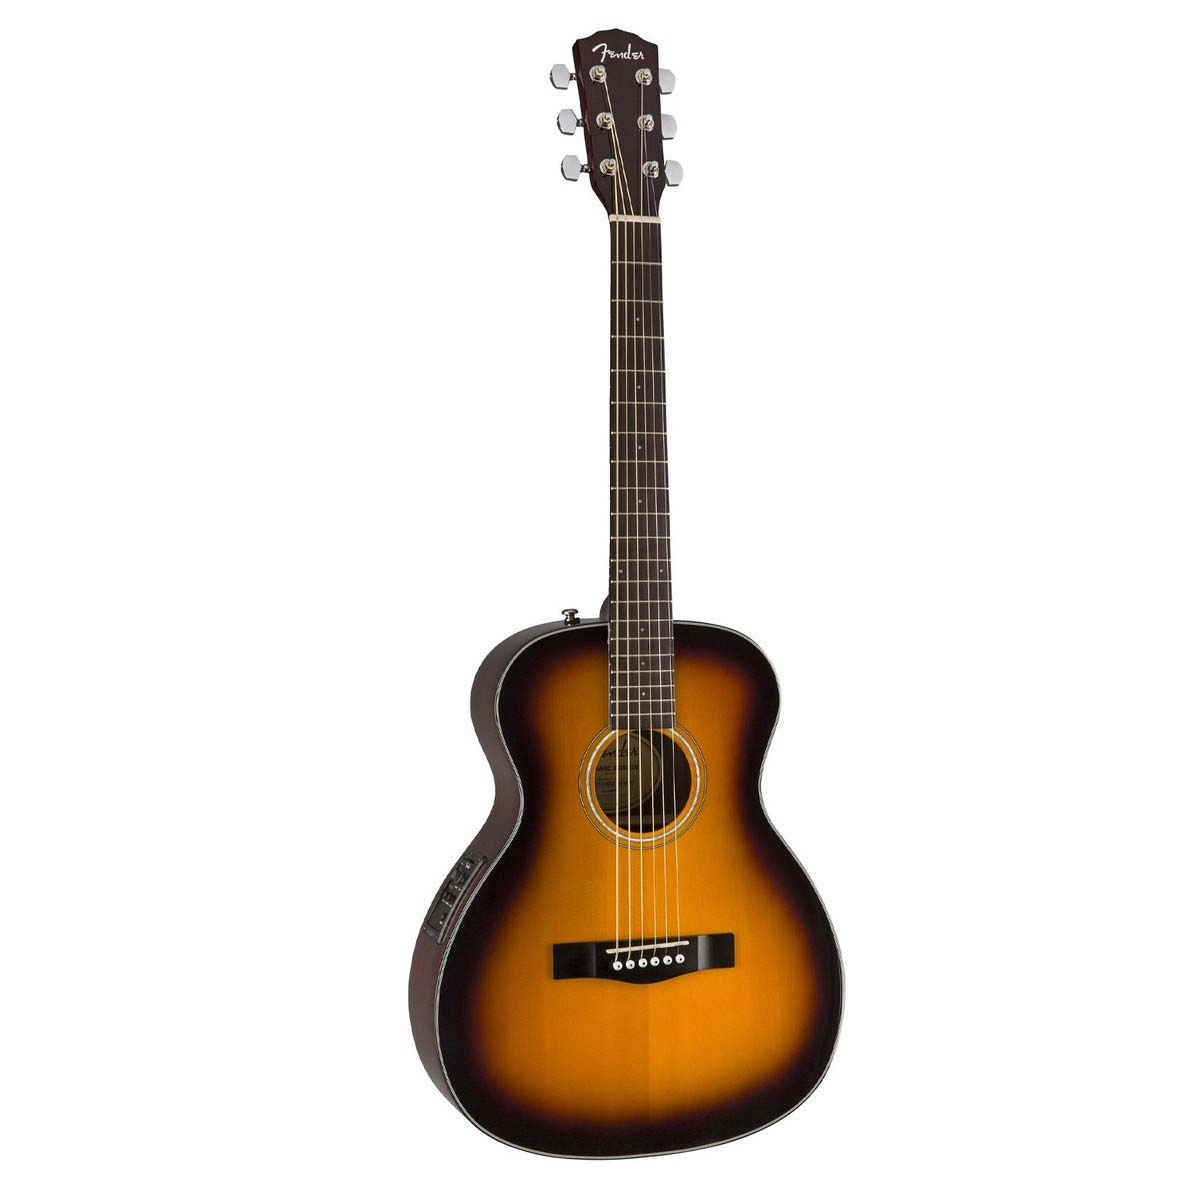 Fender CT-140SE SB western-guitar sunburst